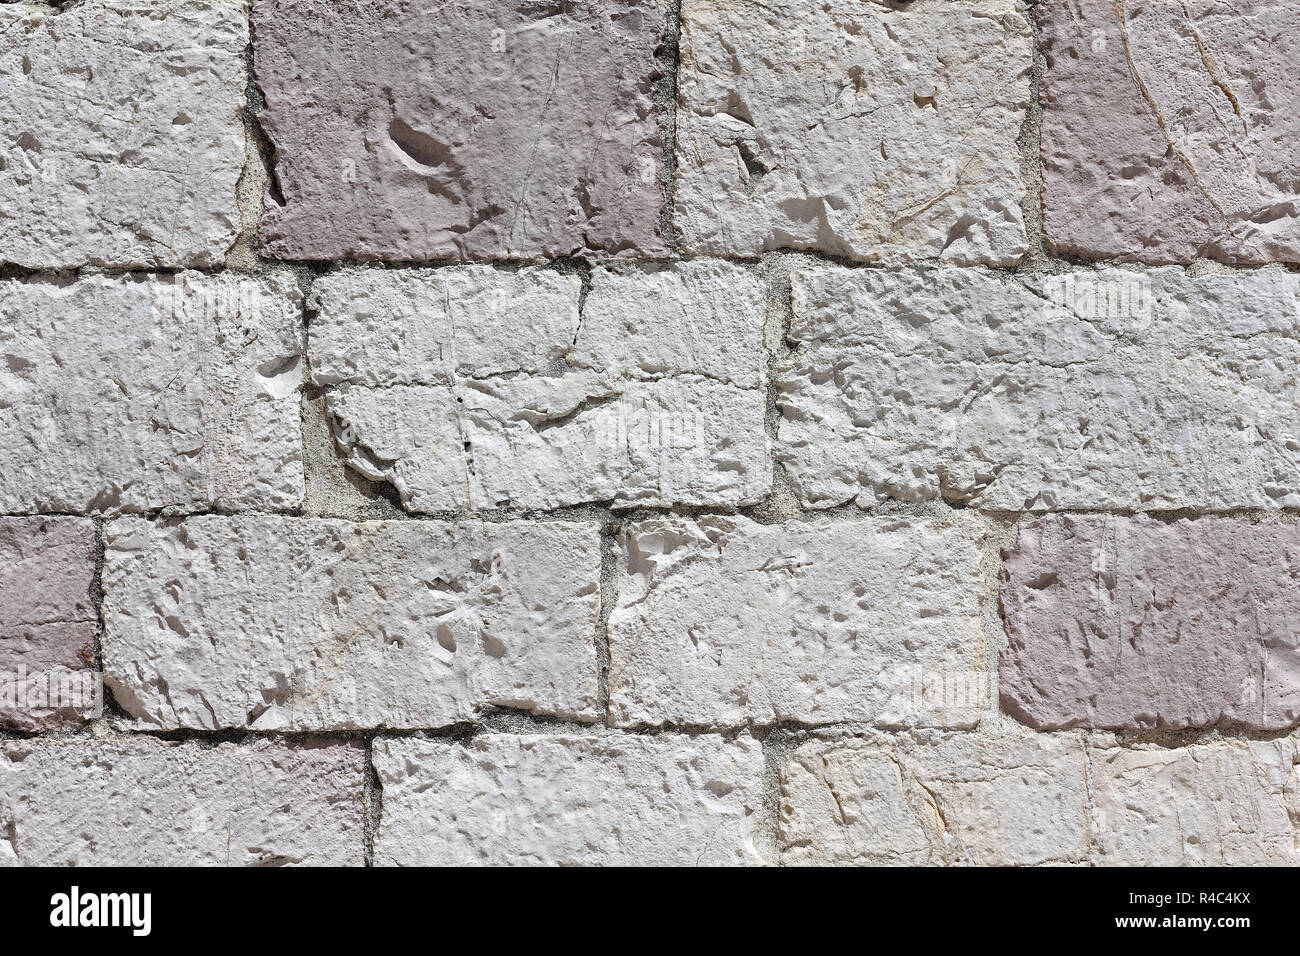 Stonework made from white-pink limestone - Stock Image